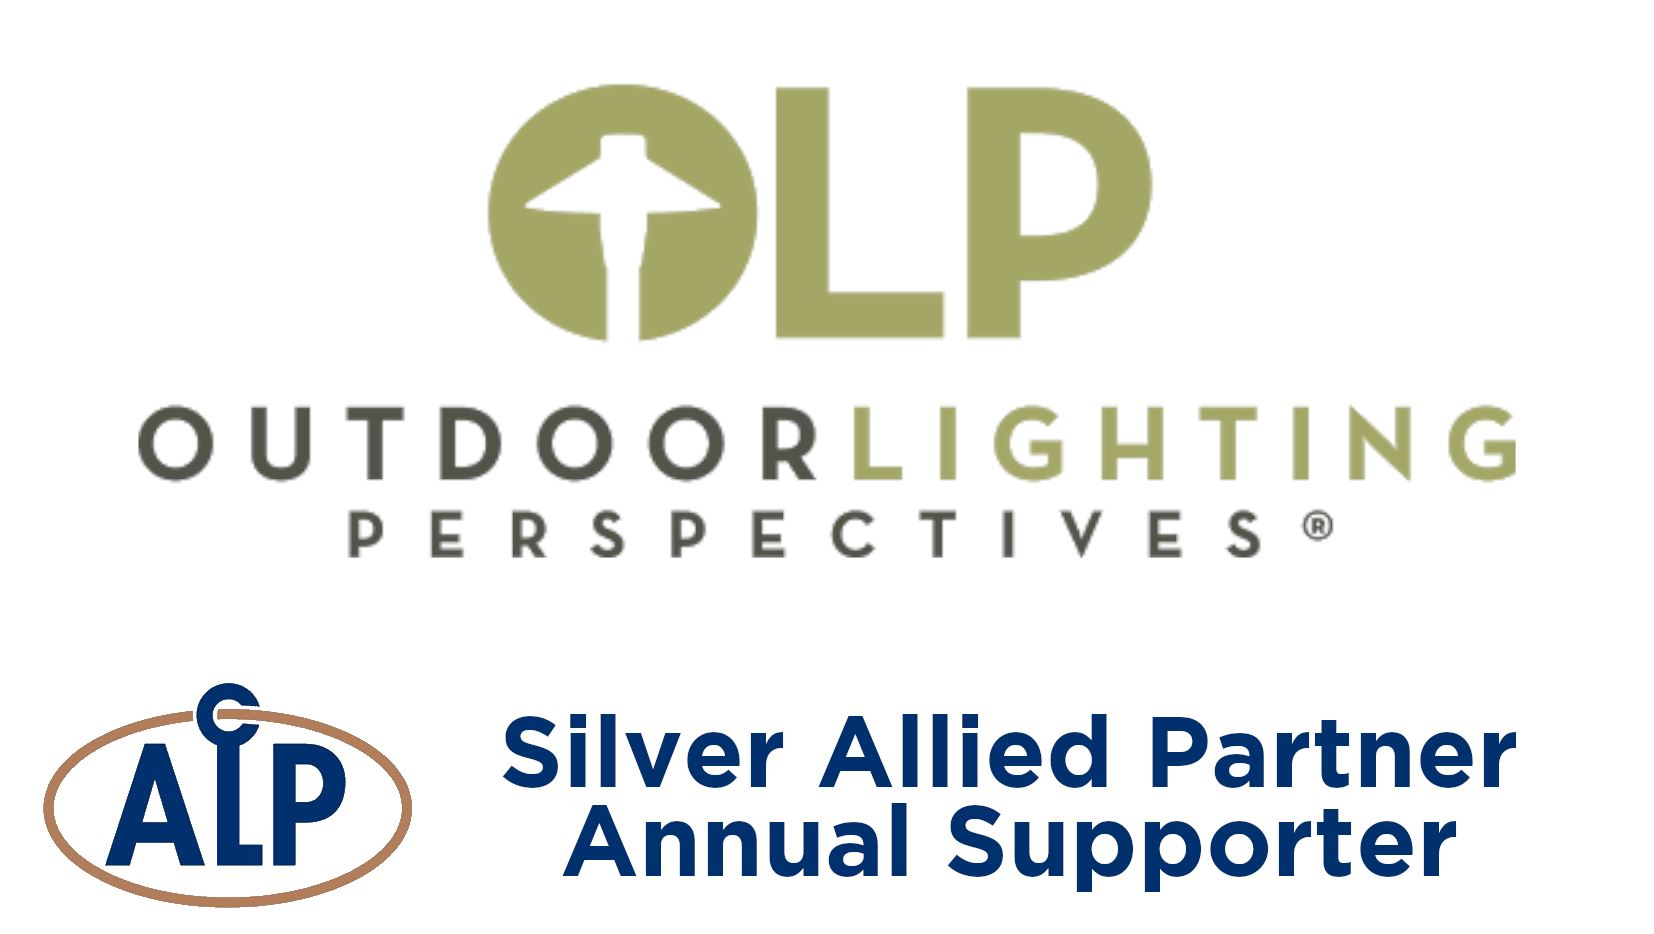 Outdoor Lighting Perspectives Logo and Sponsorship